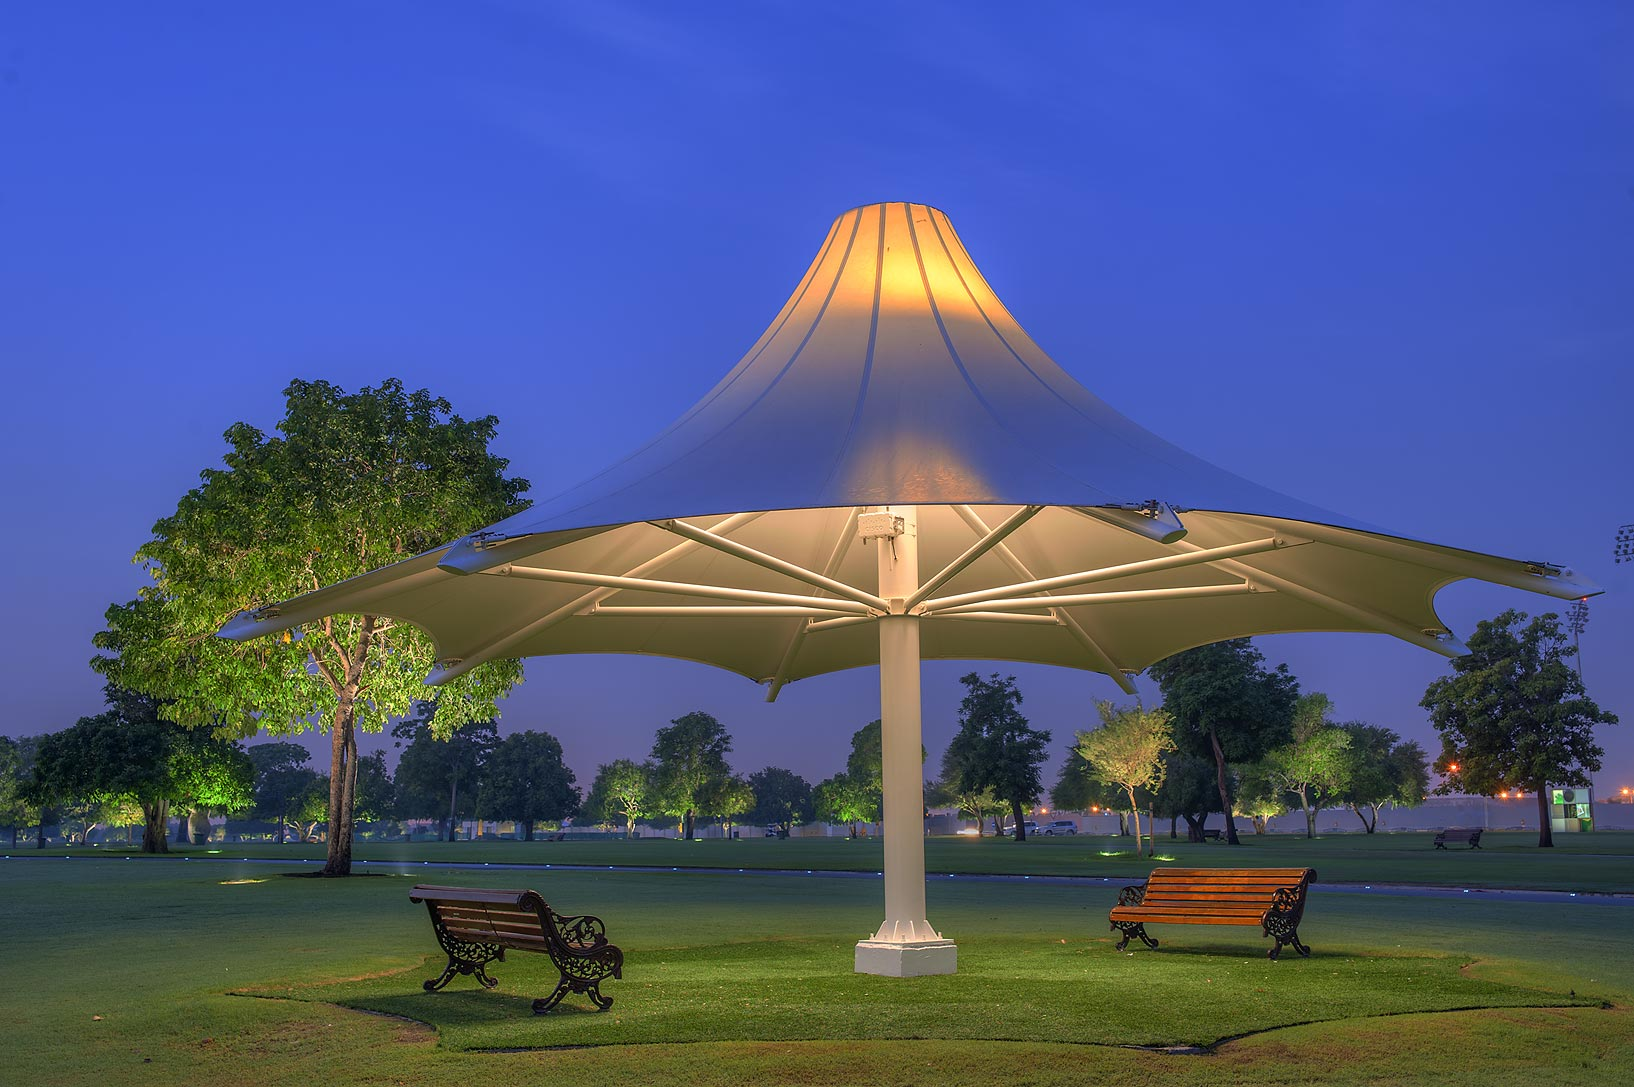 Shade with benches in Aspire Park at morning. Doha, Qatar